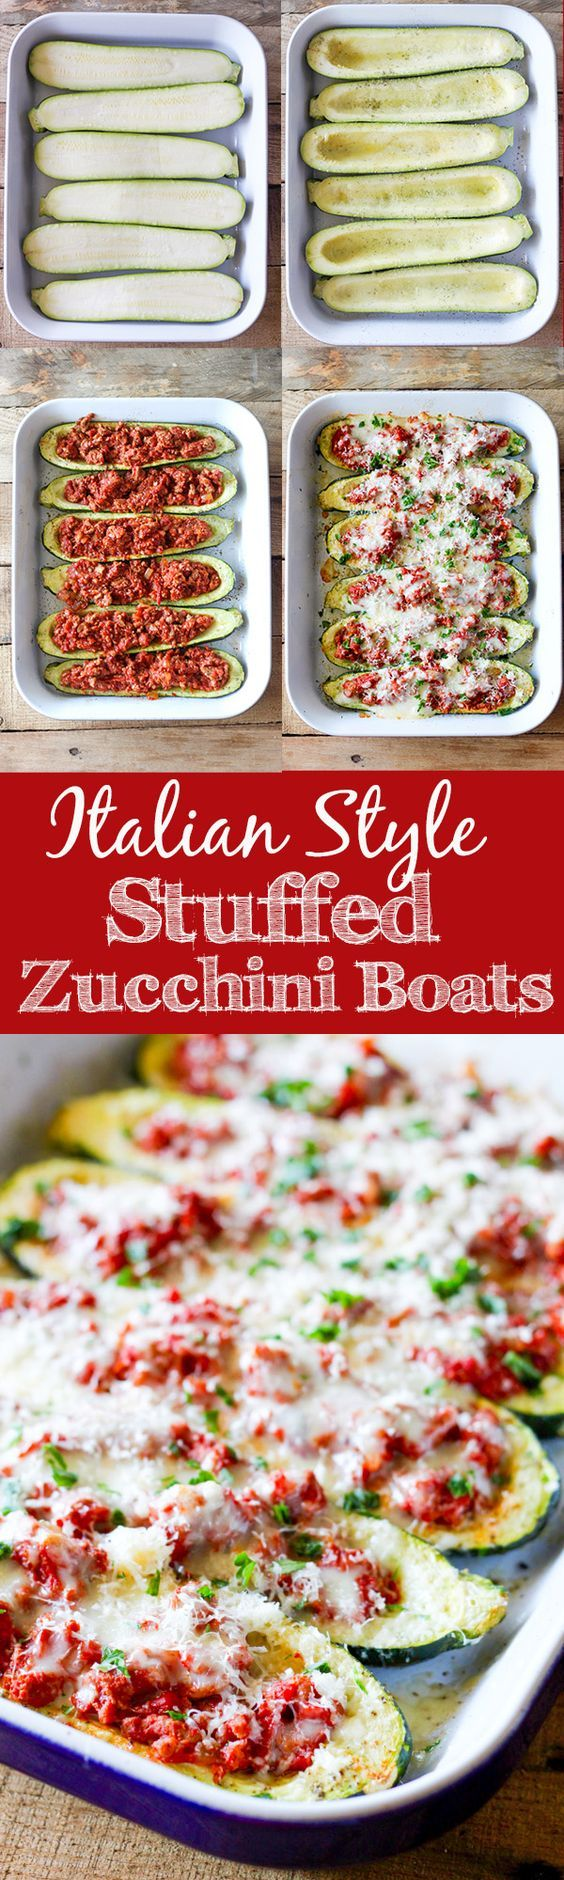 Italian Stuffed Zucchini Boats - roasted zucchini boats stuffed with lean ground turkey, homemade tomato sauce and topped with melty mozzarella cheese. @jennie